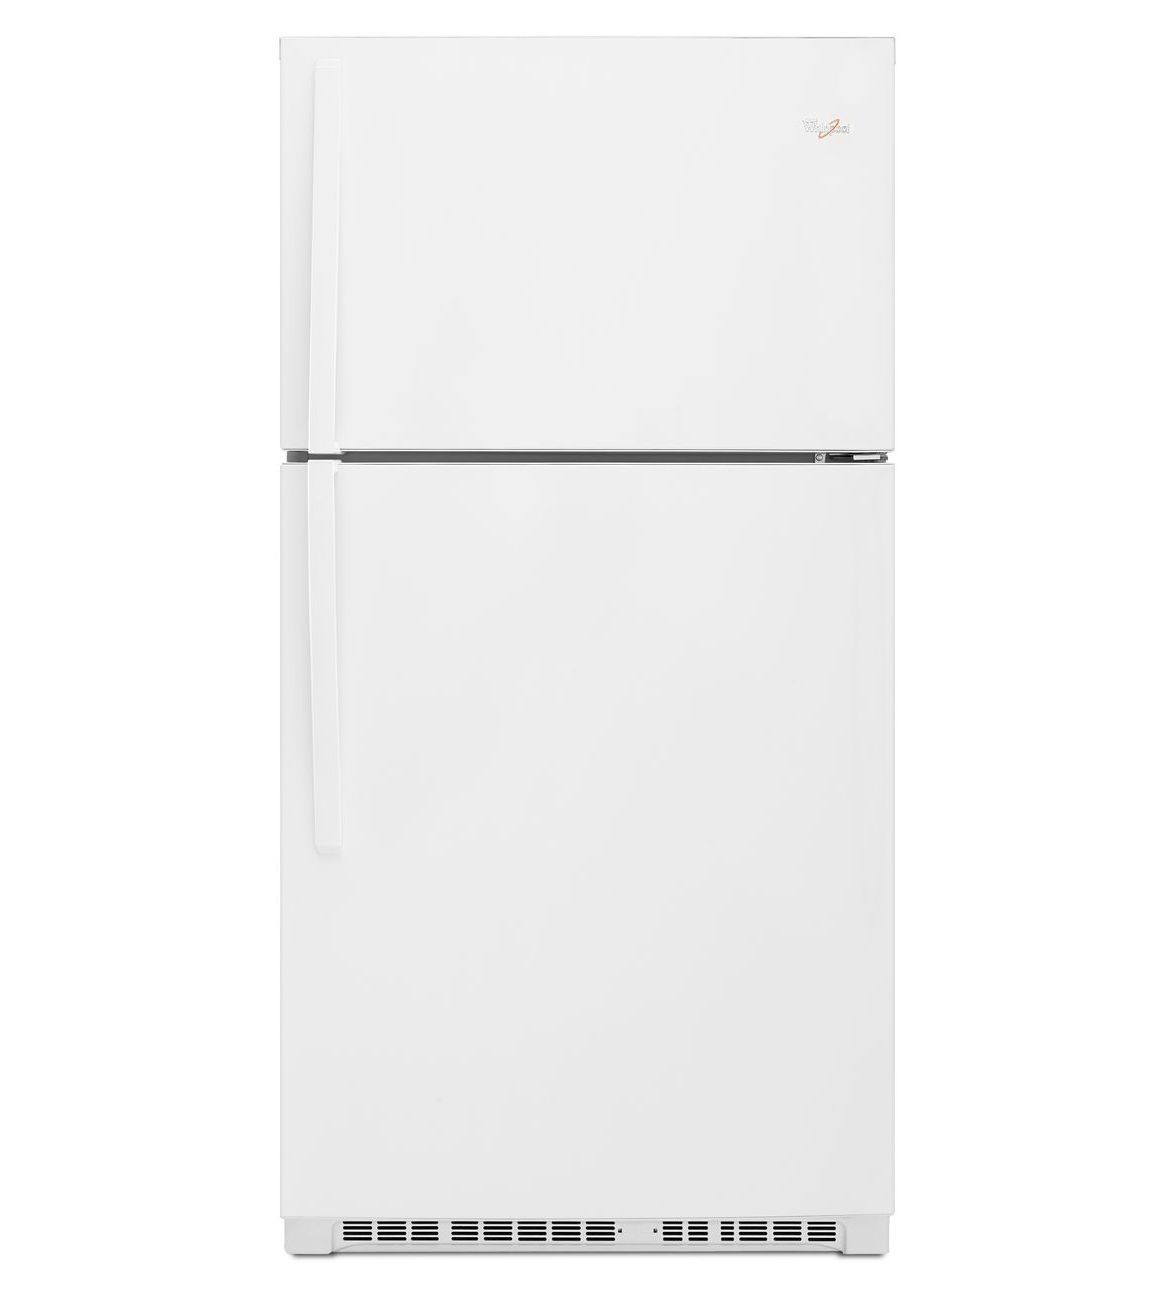 Whirlpool 33 Inch Wide Top Freezer Refrigerator More